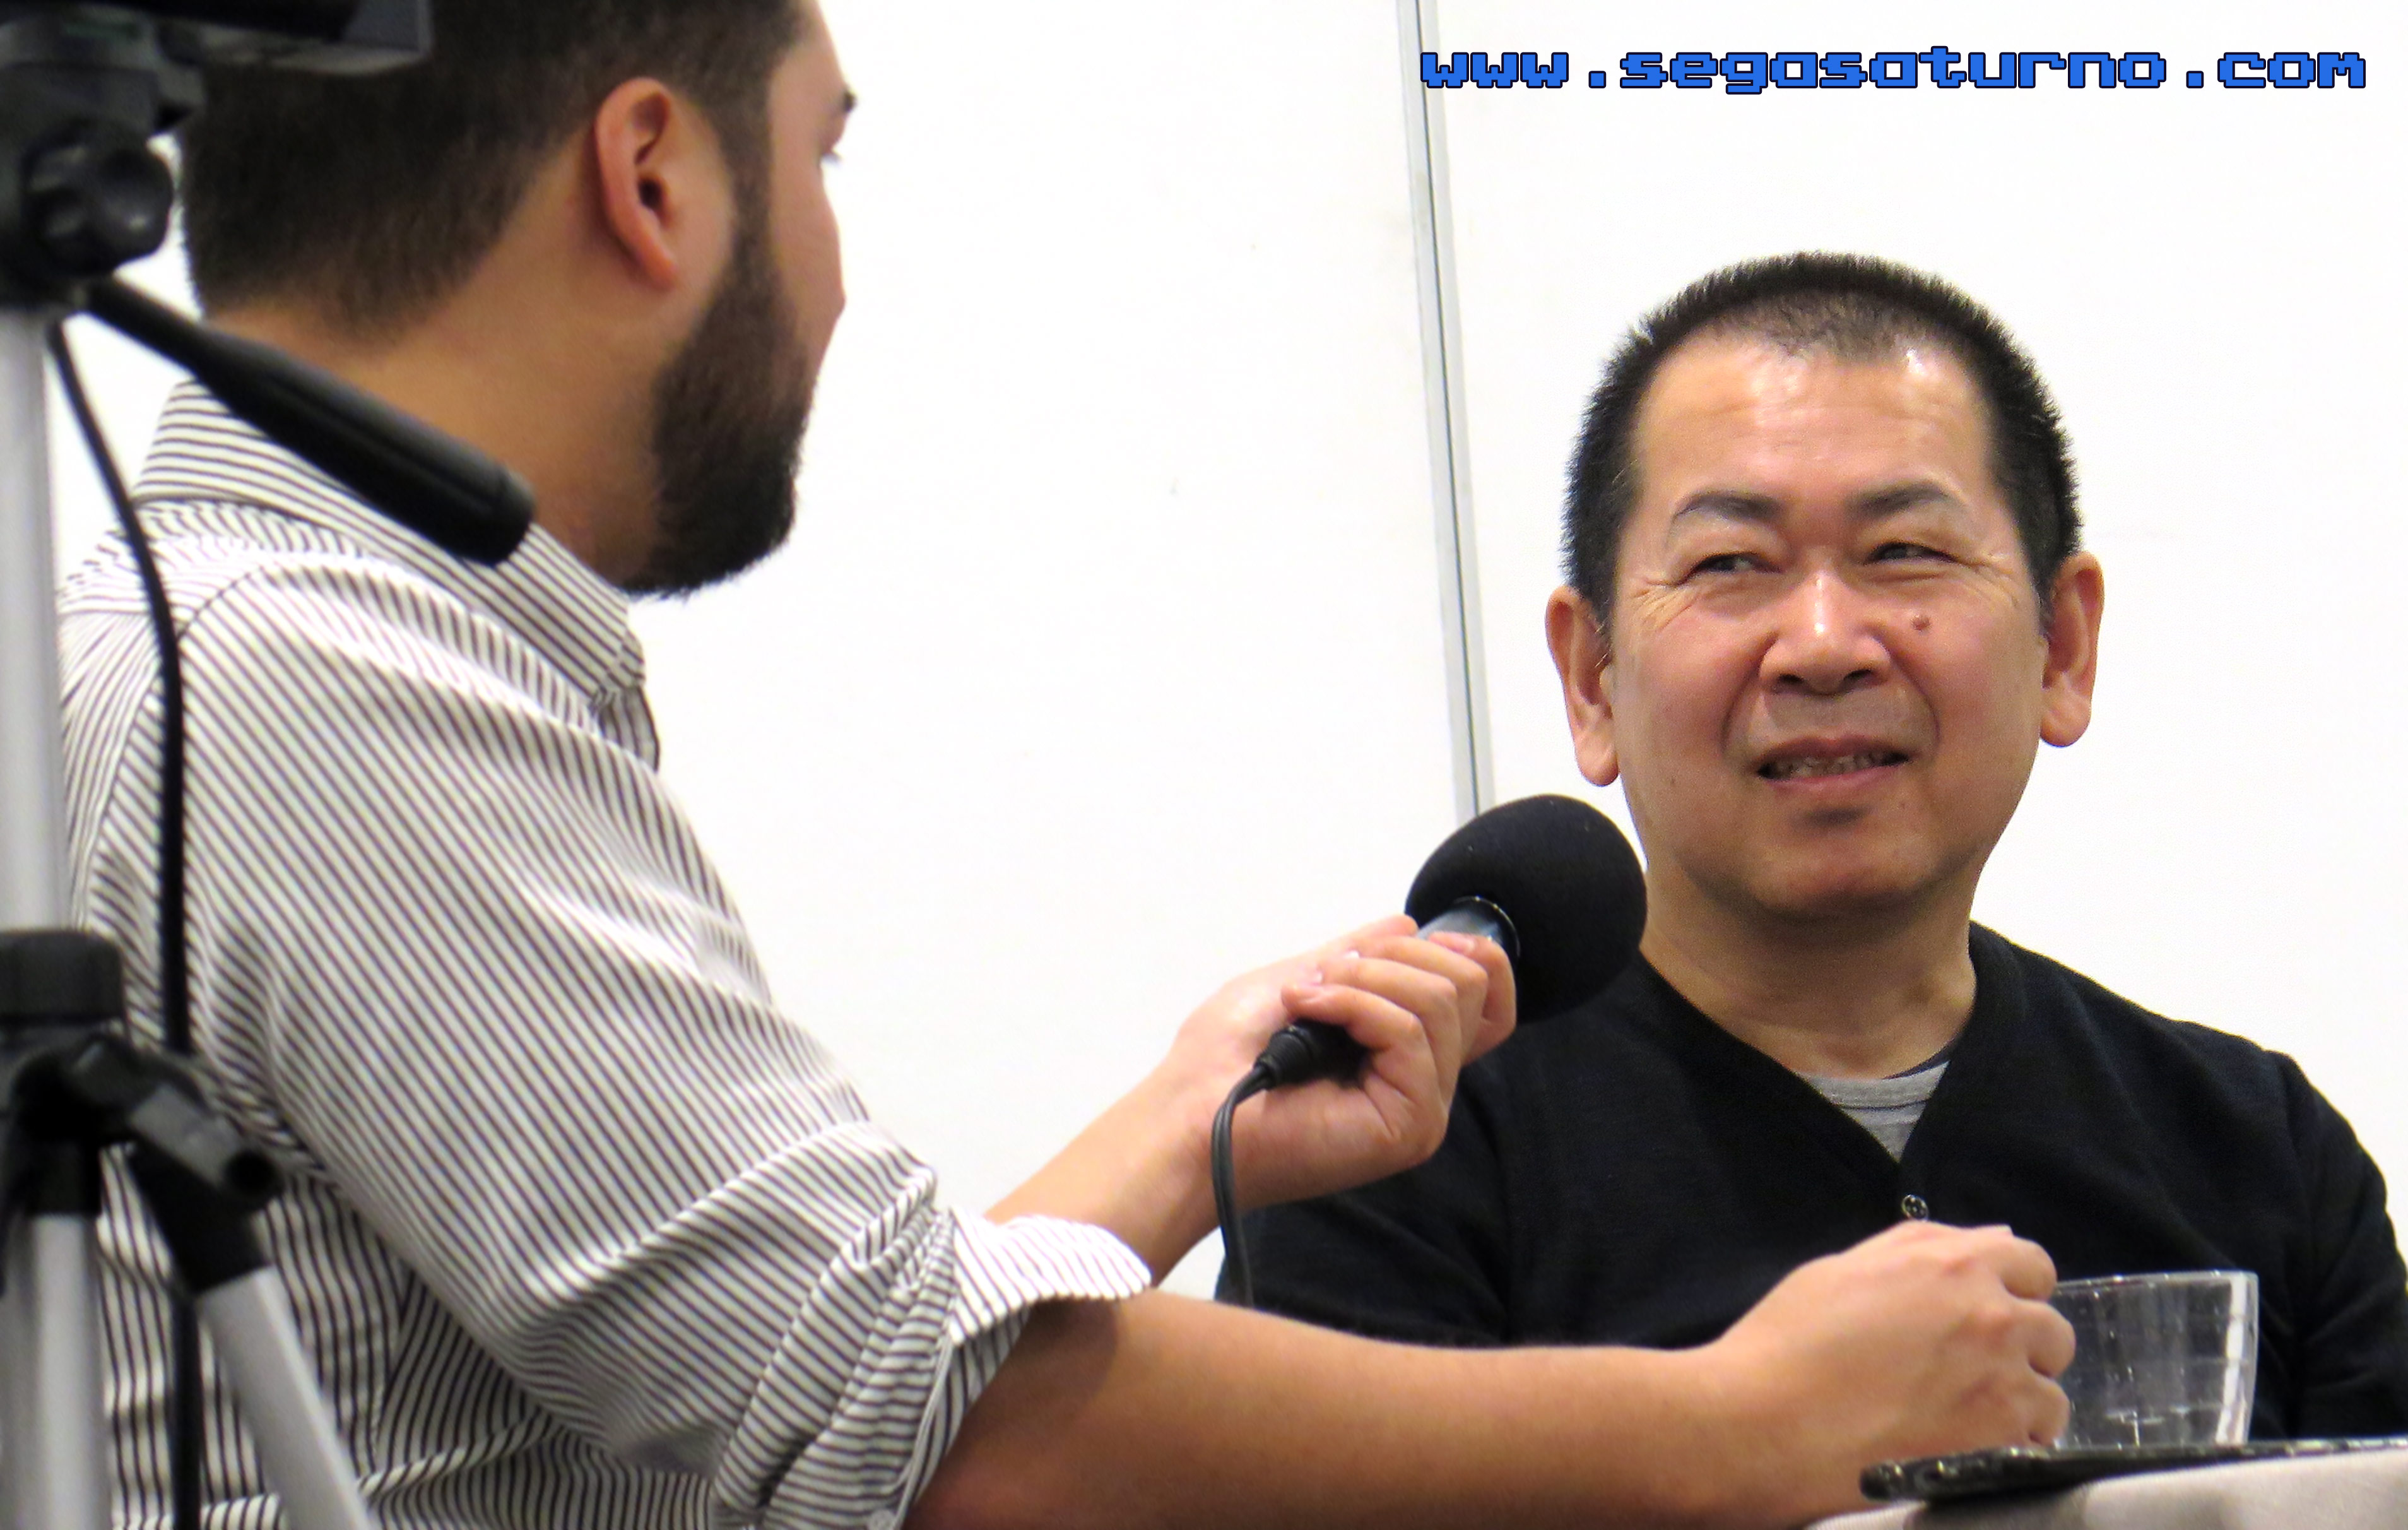 Yu Suzuki YS NET Deep Silver interview entrevista 2019 Magic Monaco Shenmue III 3 SEGASaturno Spain